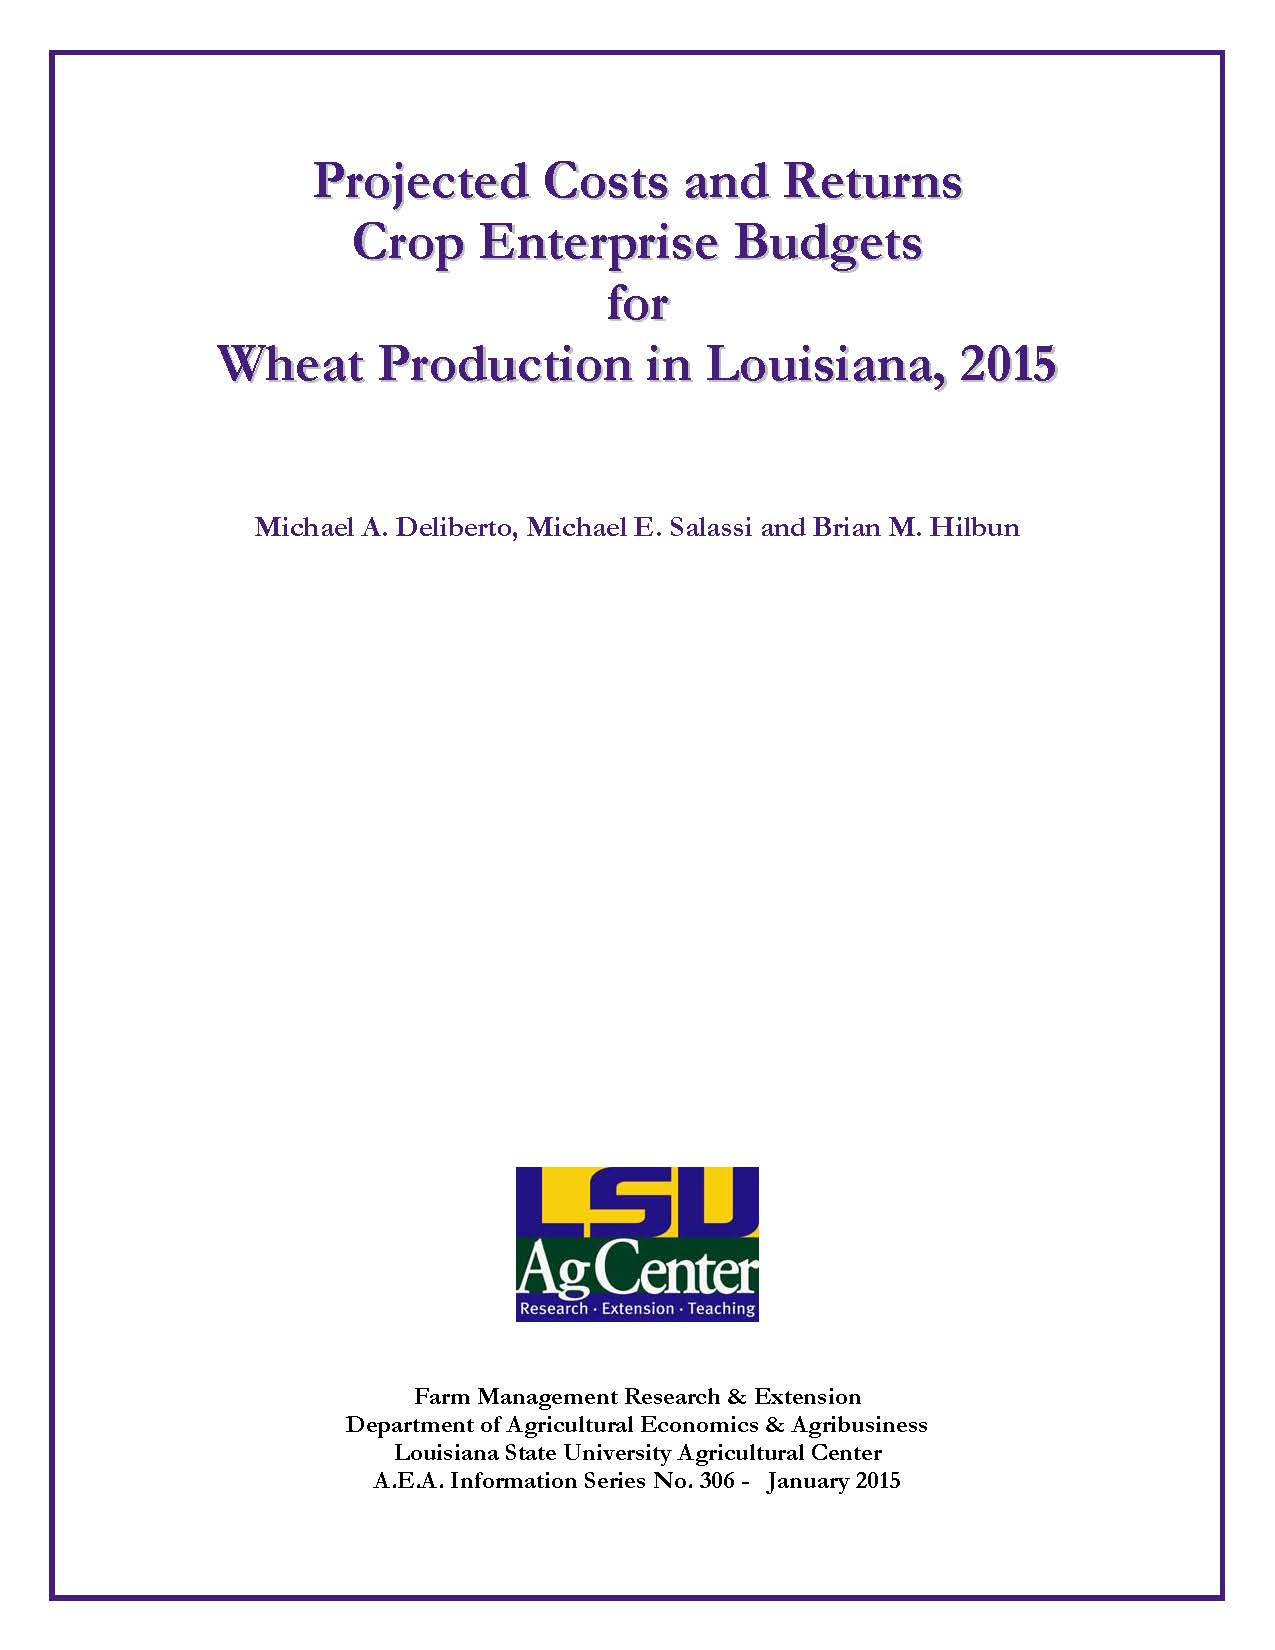 Projected Costs and Returns Crop Enterprise Budgets for Wheat Production in Louisiana 2015